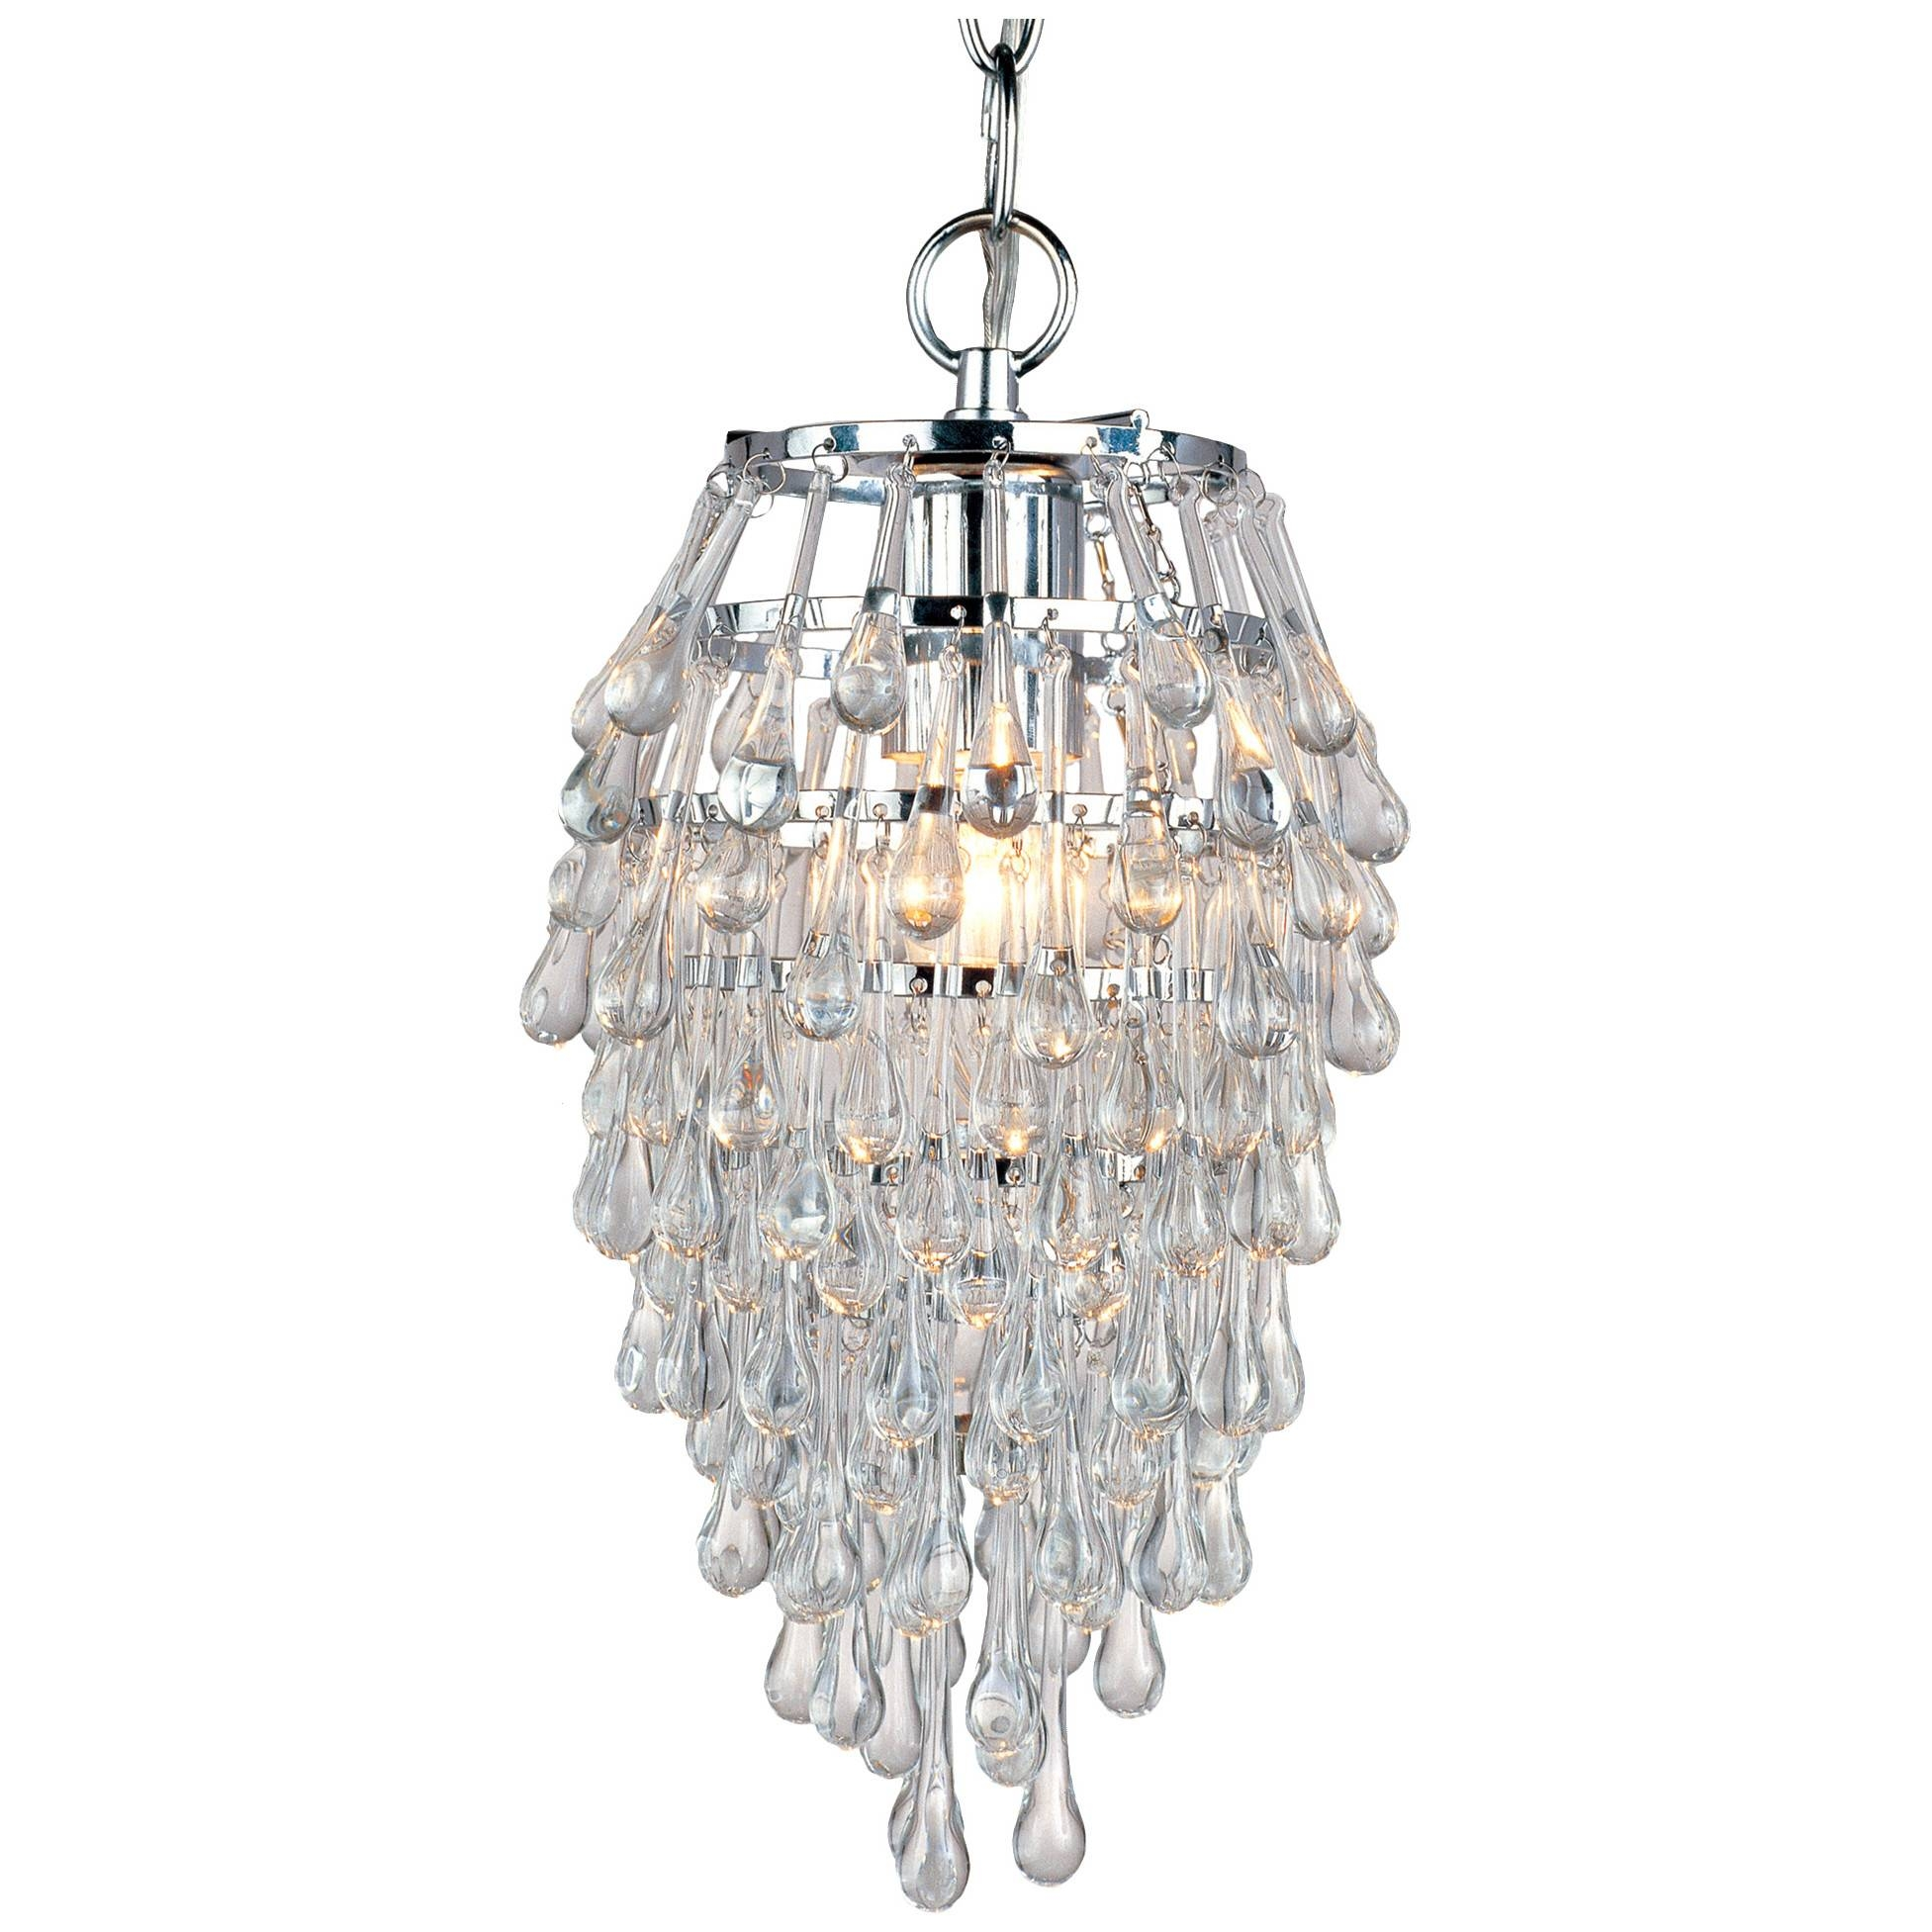 Chandeliers Design : Wonderful Lowes Bedroom Light Fixtures Rustic inside Crystal Teardrop Pendant Lights (Image 2 of 15)